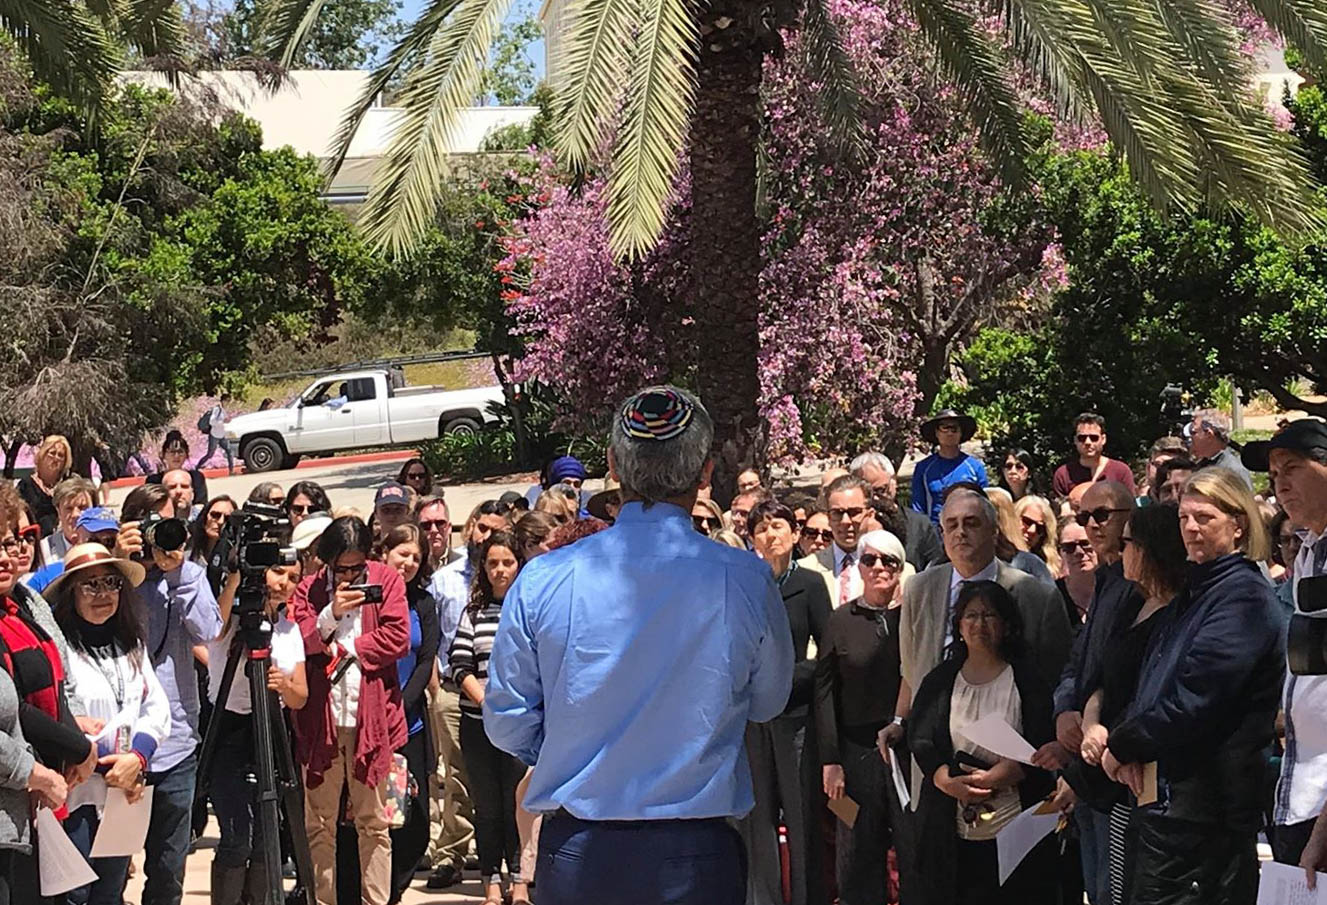 Mourners gathered at Scripps Cottage to commemorate the Chabad Poway Synagogue shooting.